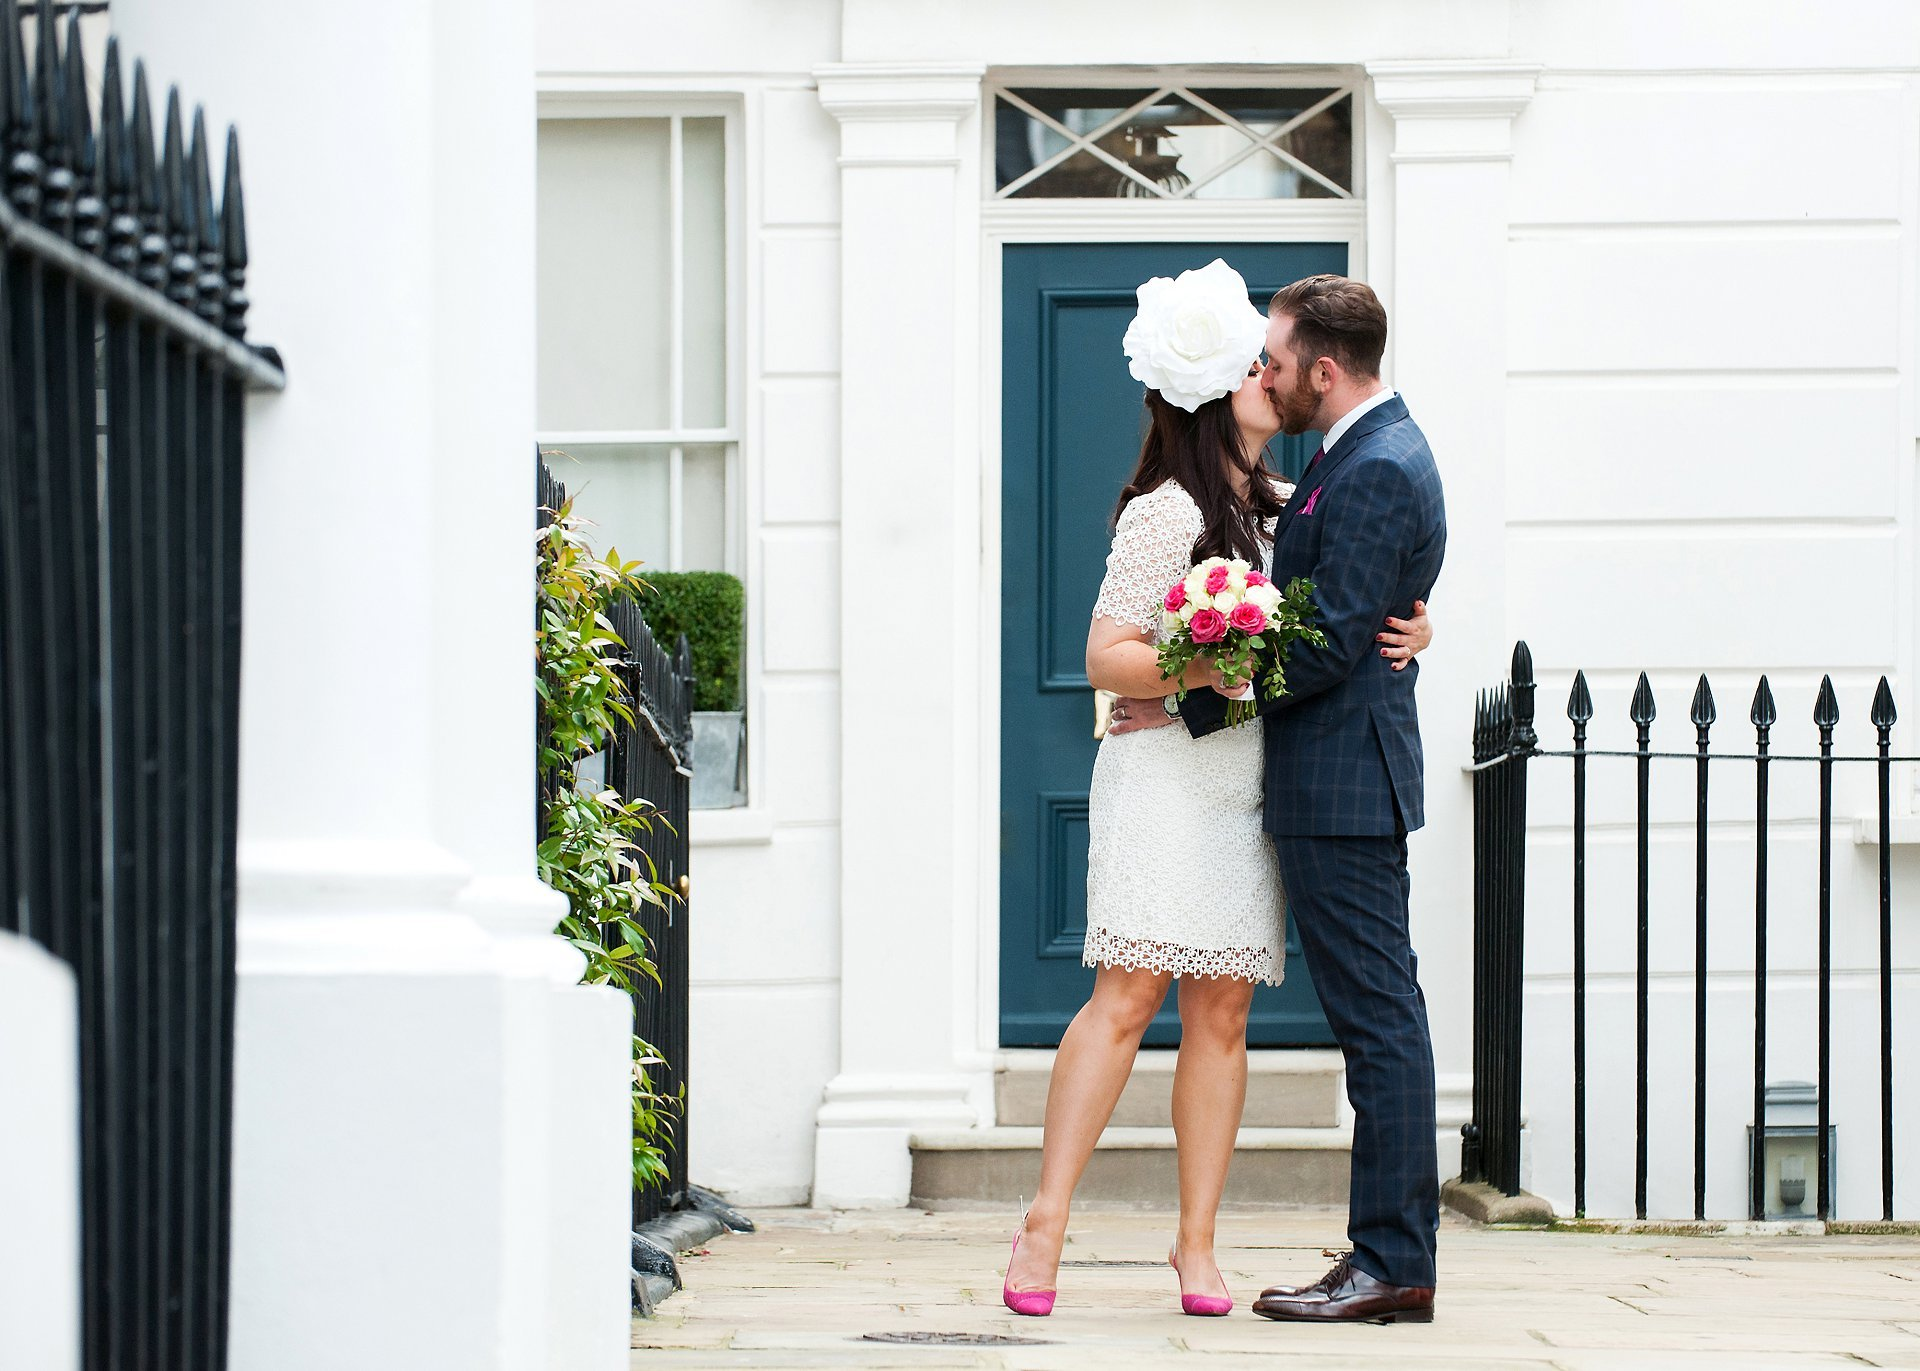 A bride and groom kiss in front of a typical Chelsea white stucco building - Chelsea wedding photography by Emma Duggan